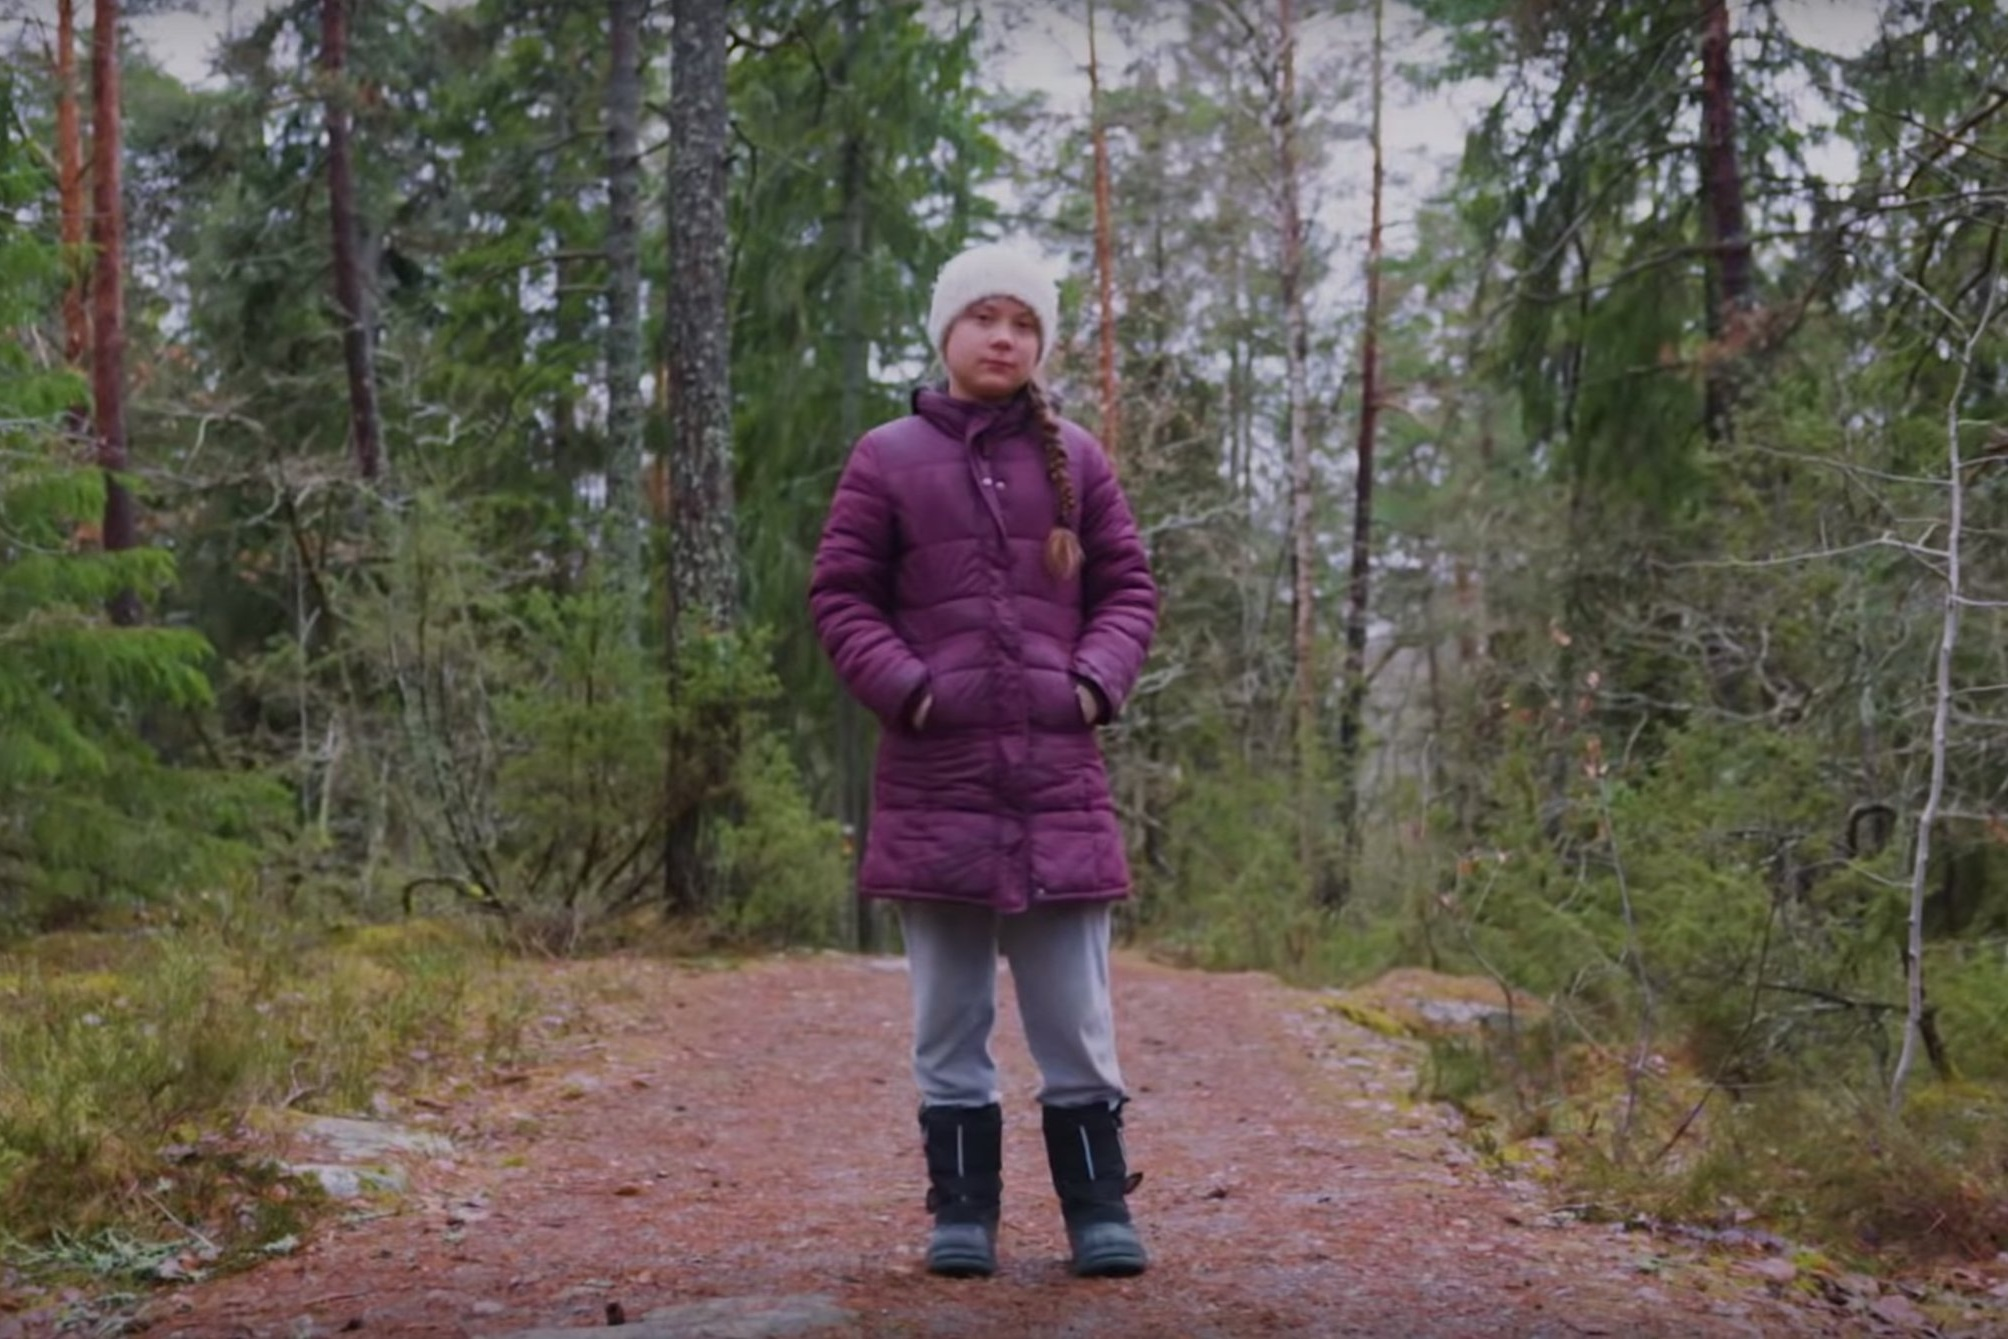 Greta - For hundreds of thousands of young people, Greta Thunberg is an icon. At only 16, she's proving you don't have to be an adult to make a world of a difference. Today, the Nobel Peace Prize nominee is among the most influential voices speaking out about Earth's dire climate crisis.Run time: 7 minutes 56 secondsDirected by: Mark Boyer